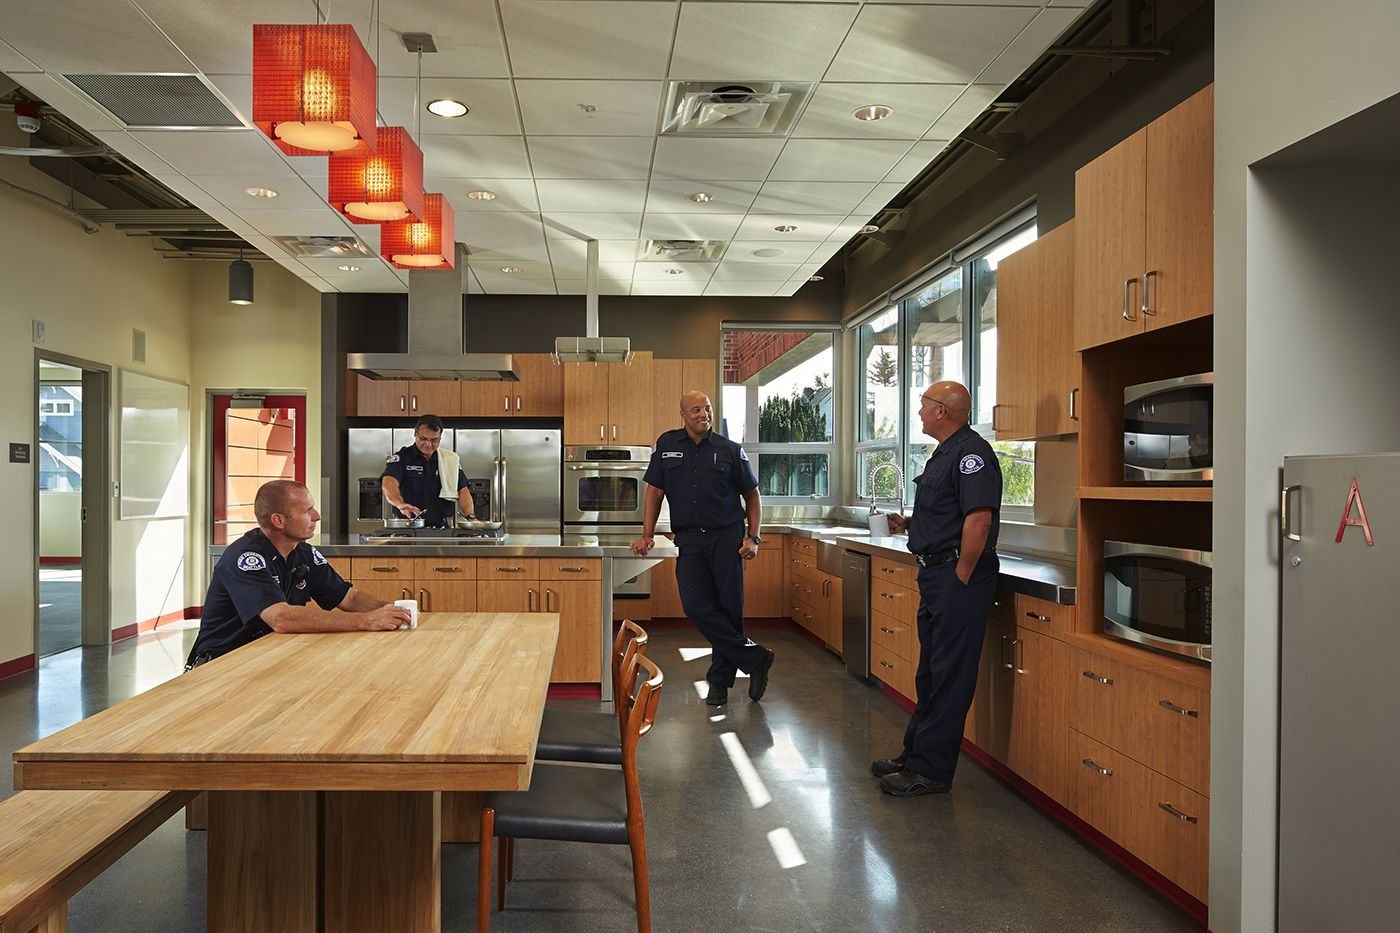 Fire Stations Interior Station Department